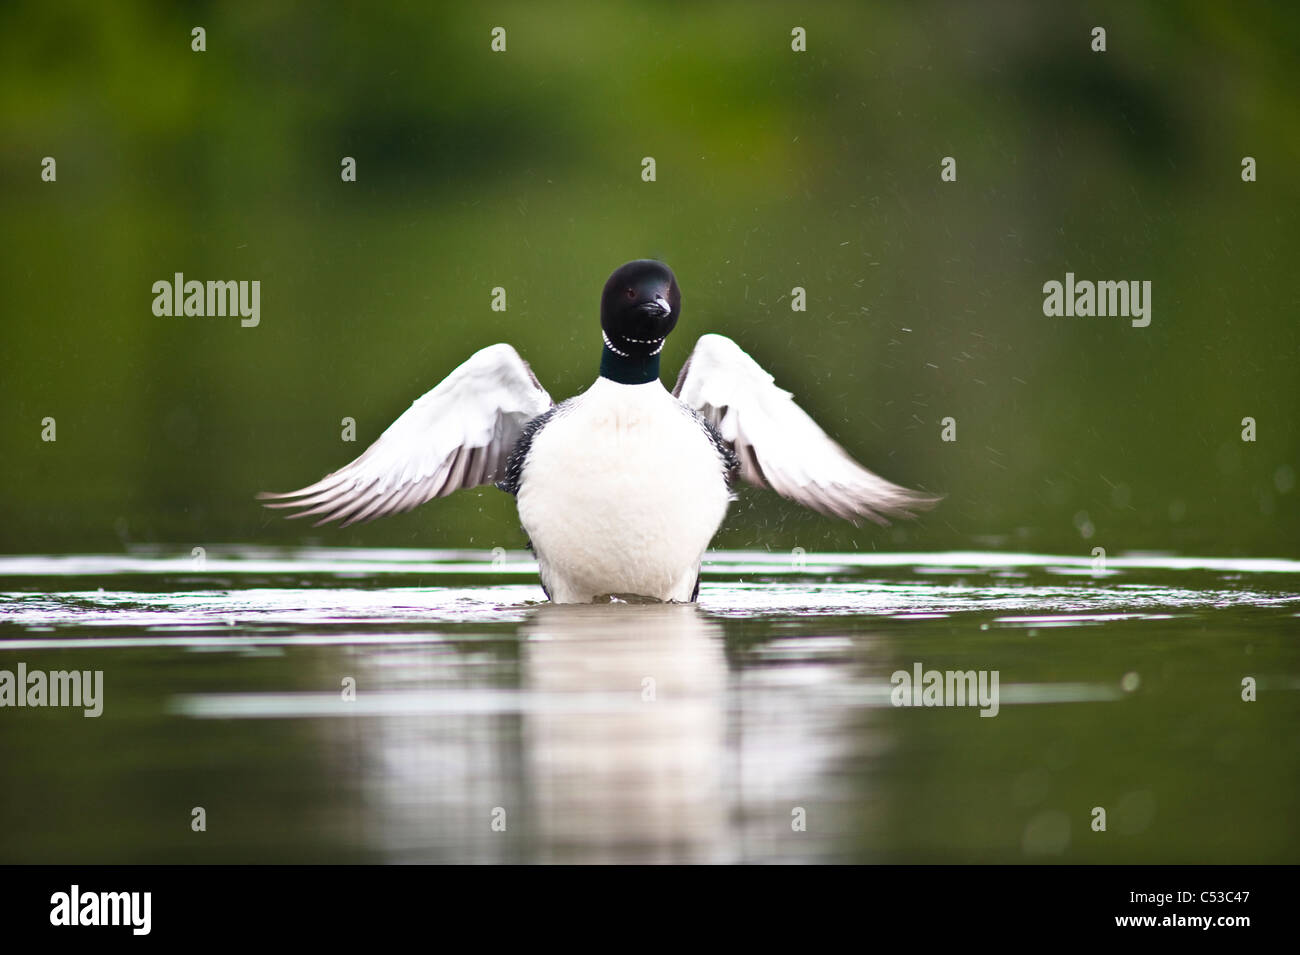 Flapping Wings Stock Photos & Flapping Wings Stock Images - Alamy